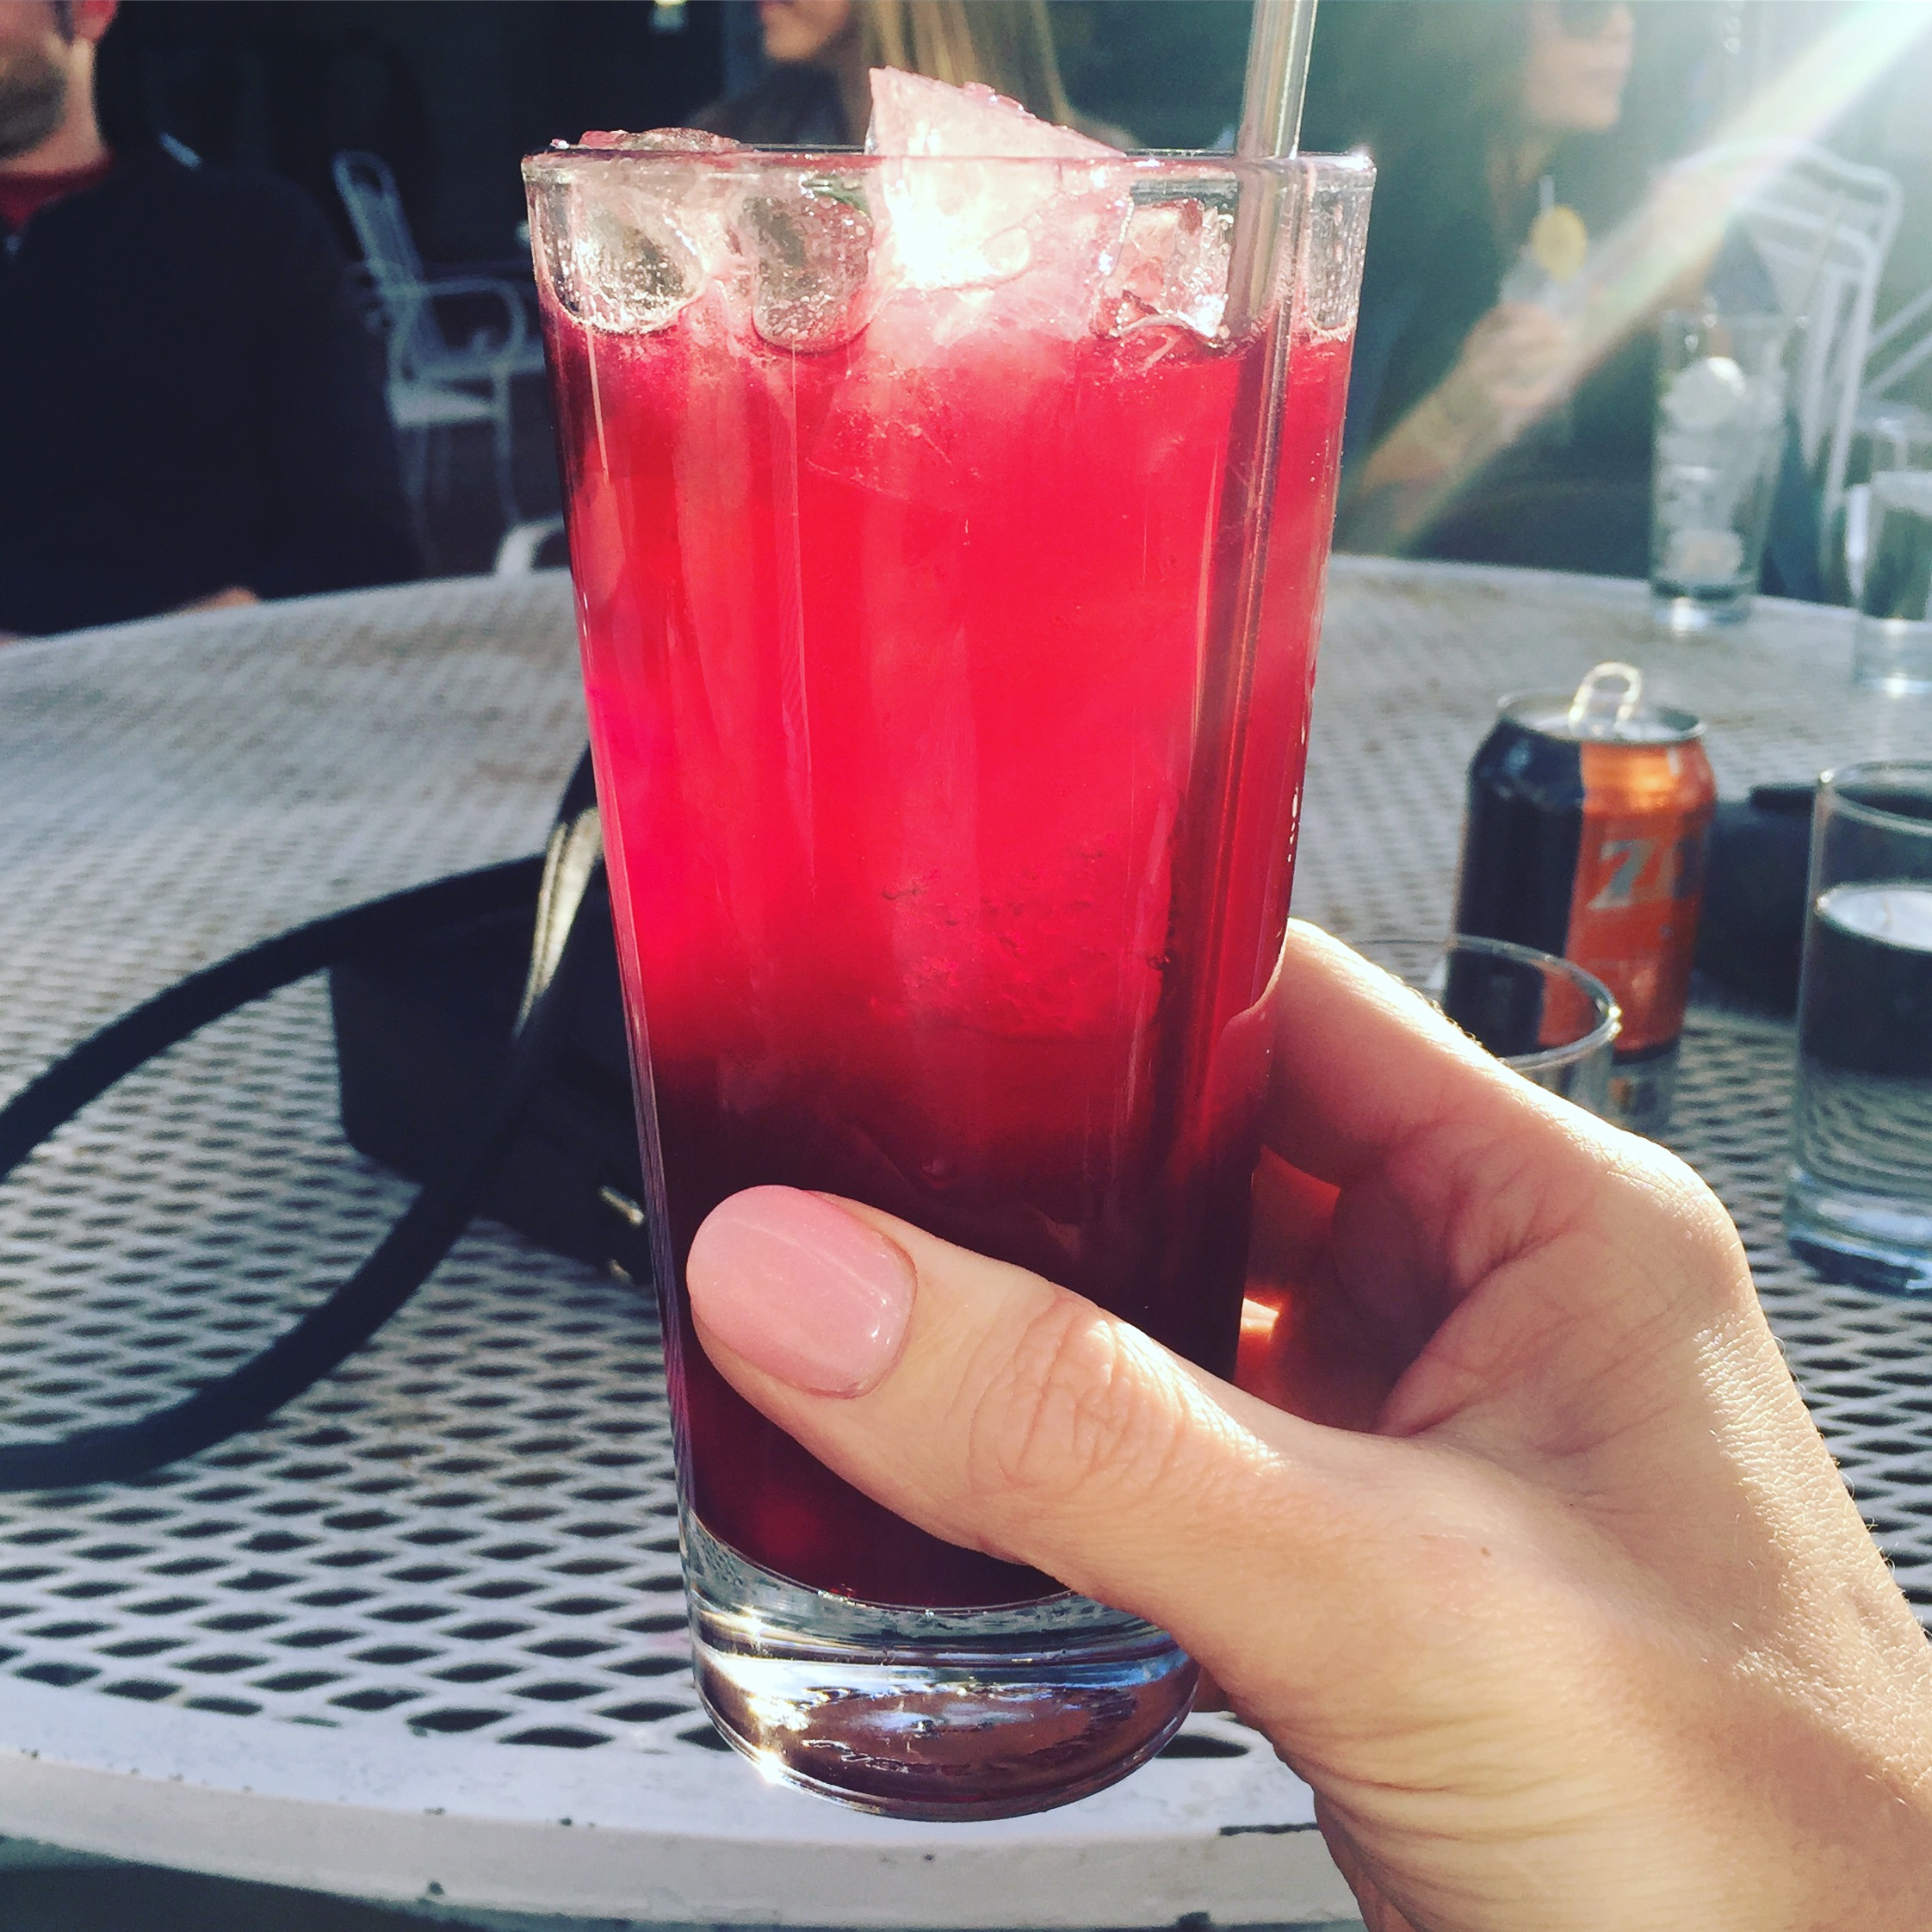 Don't worry folks, that's just a delicious mocktail I enjoyed while celebrating a friend's birthday.